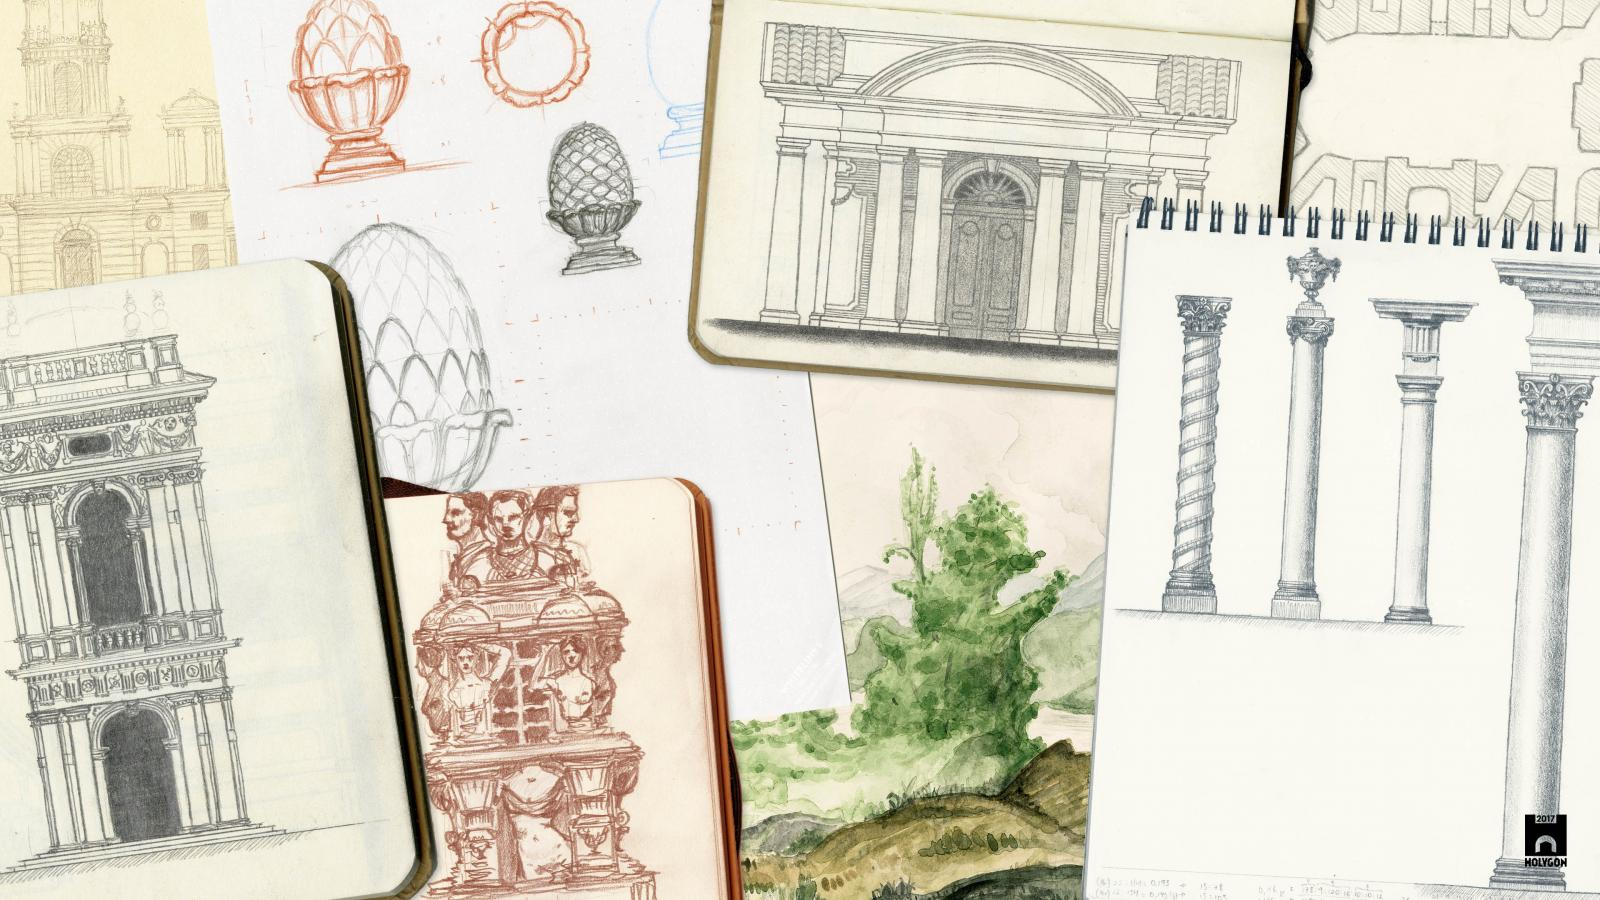 A collage of hand-drawn architectural sketches.